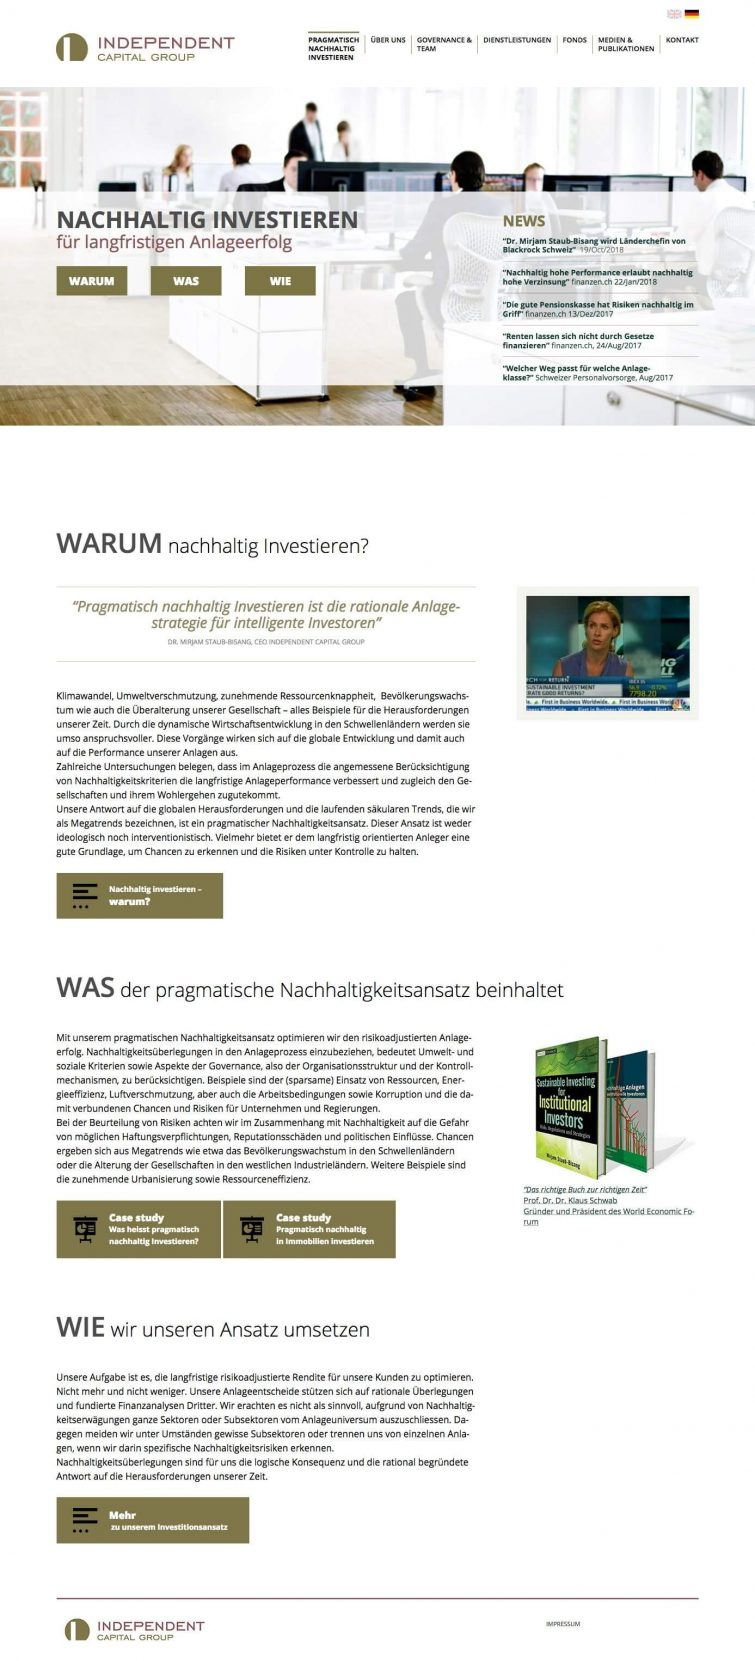 Webdesign für Independent Capital Group AG Zürich